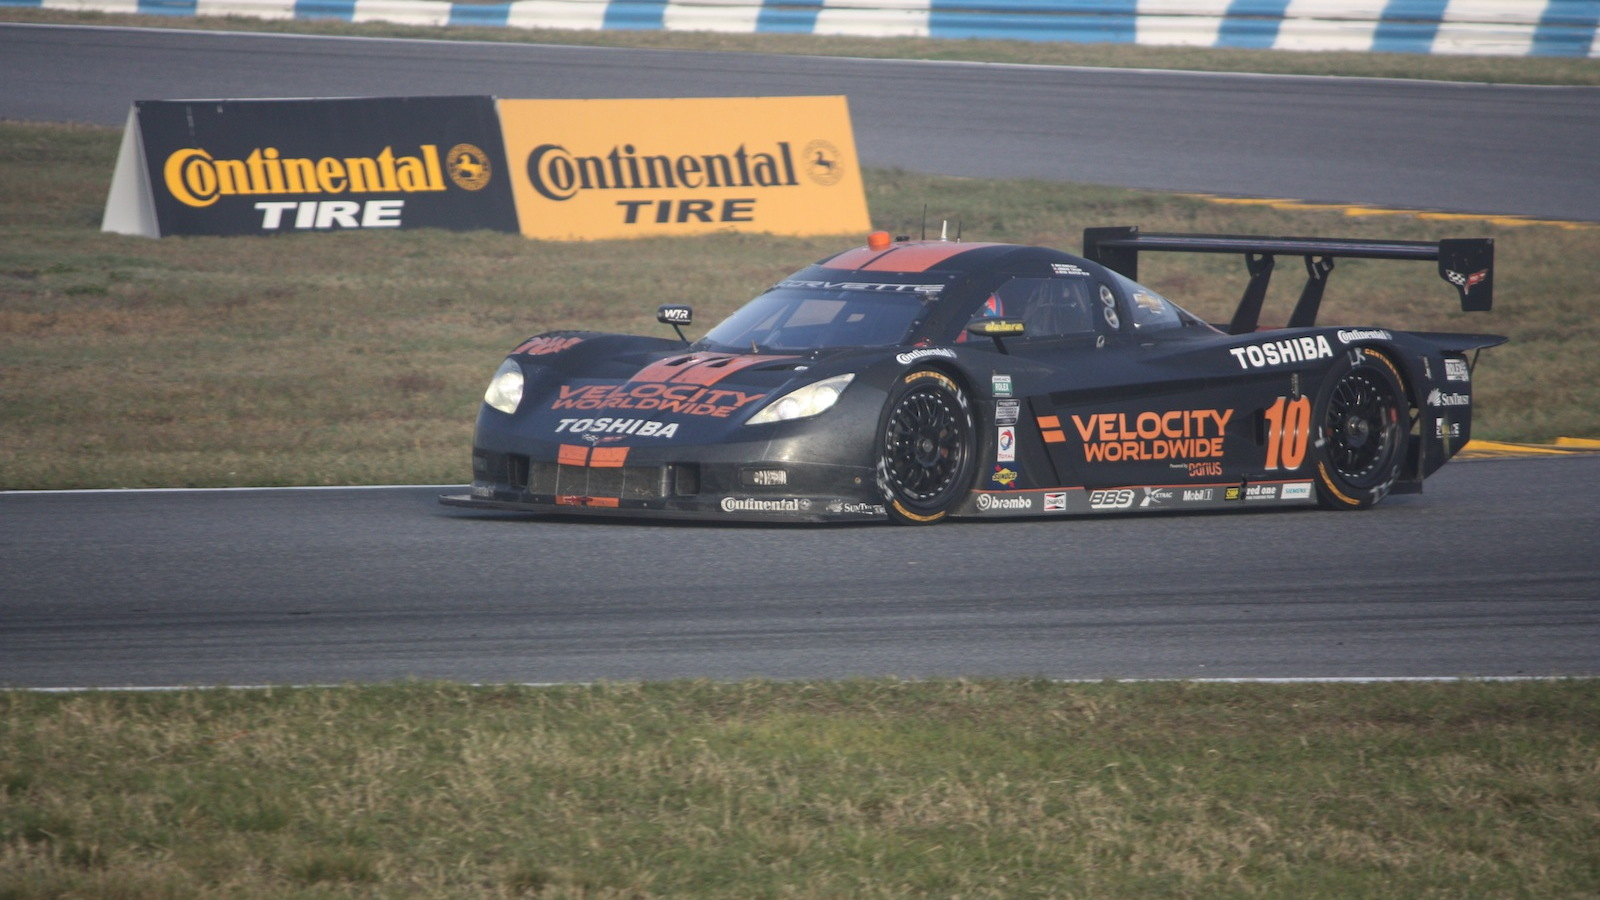 The DP class second place Corvette of Velocity Racing